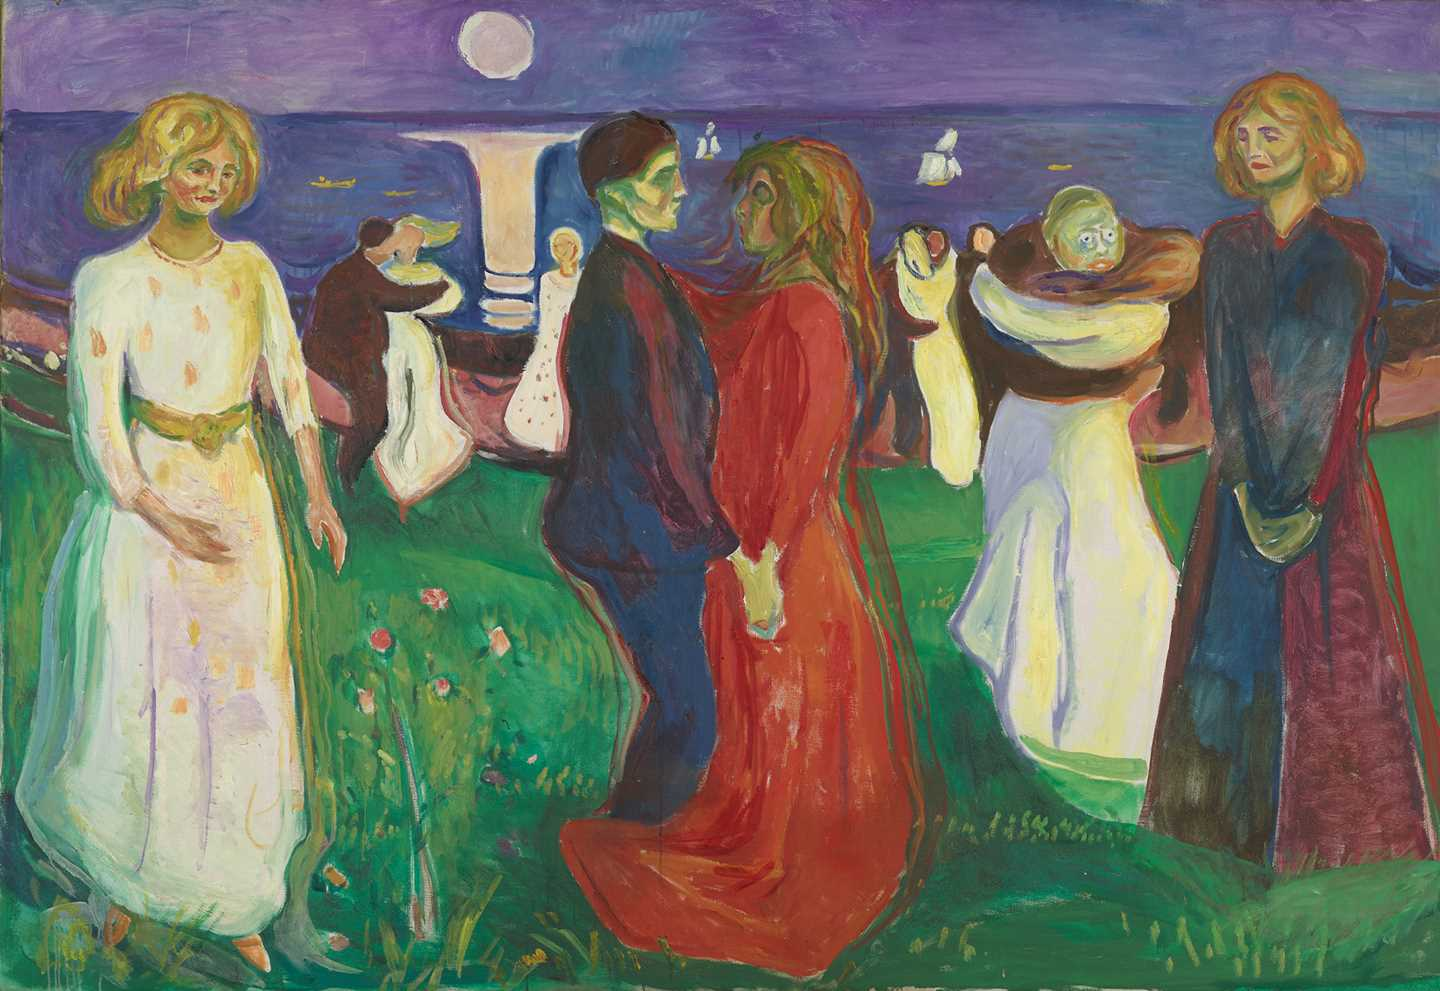 Edvard Munch: The Dance of Life. Oil on canvas, 1925. Photo © Munchmuseet